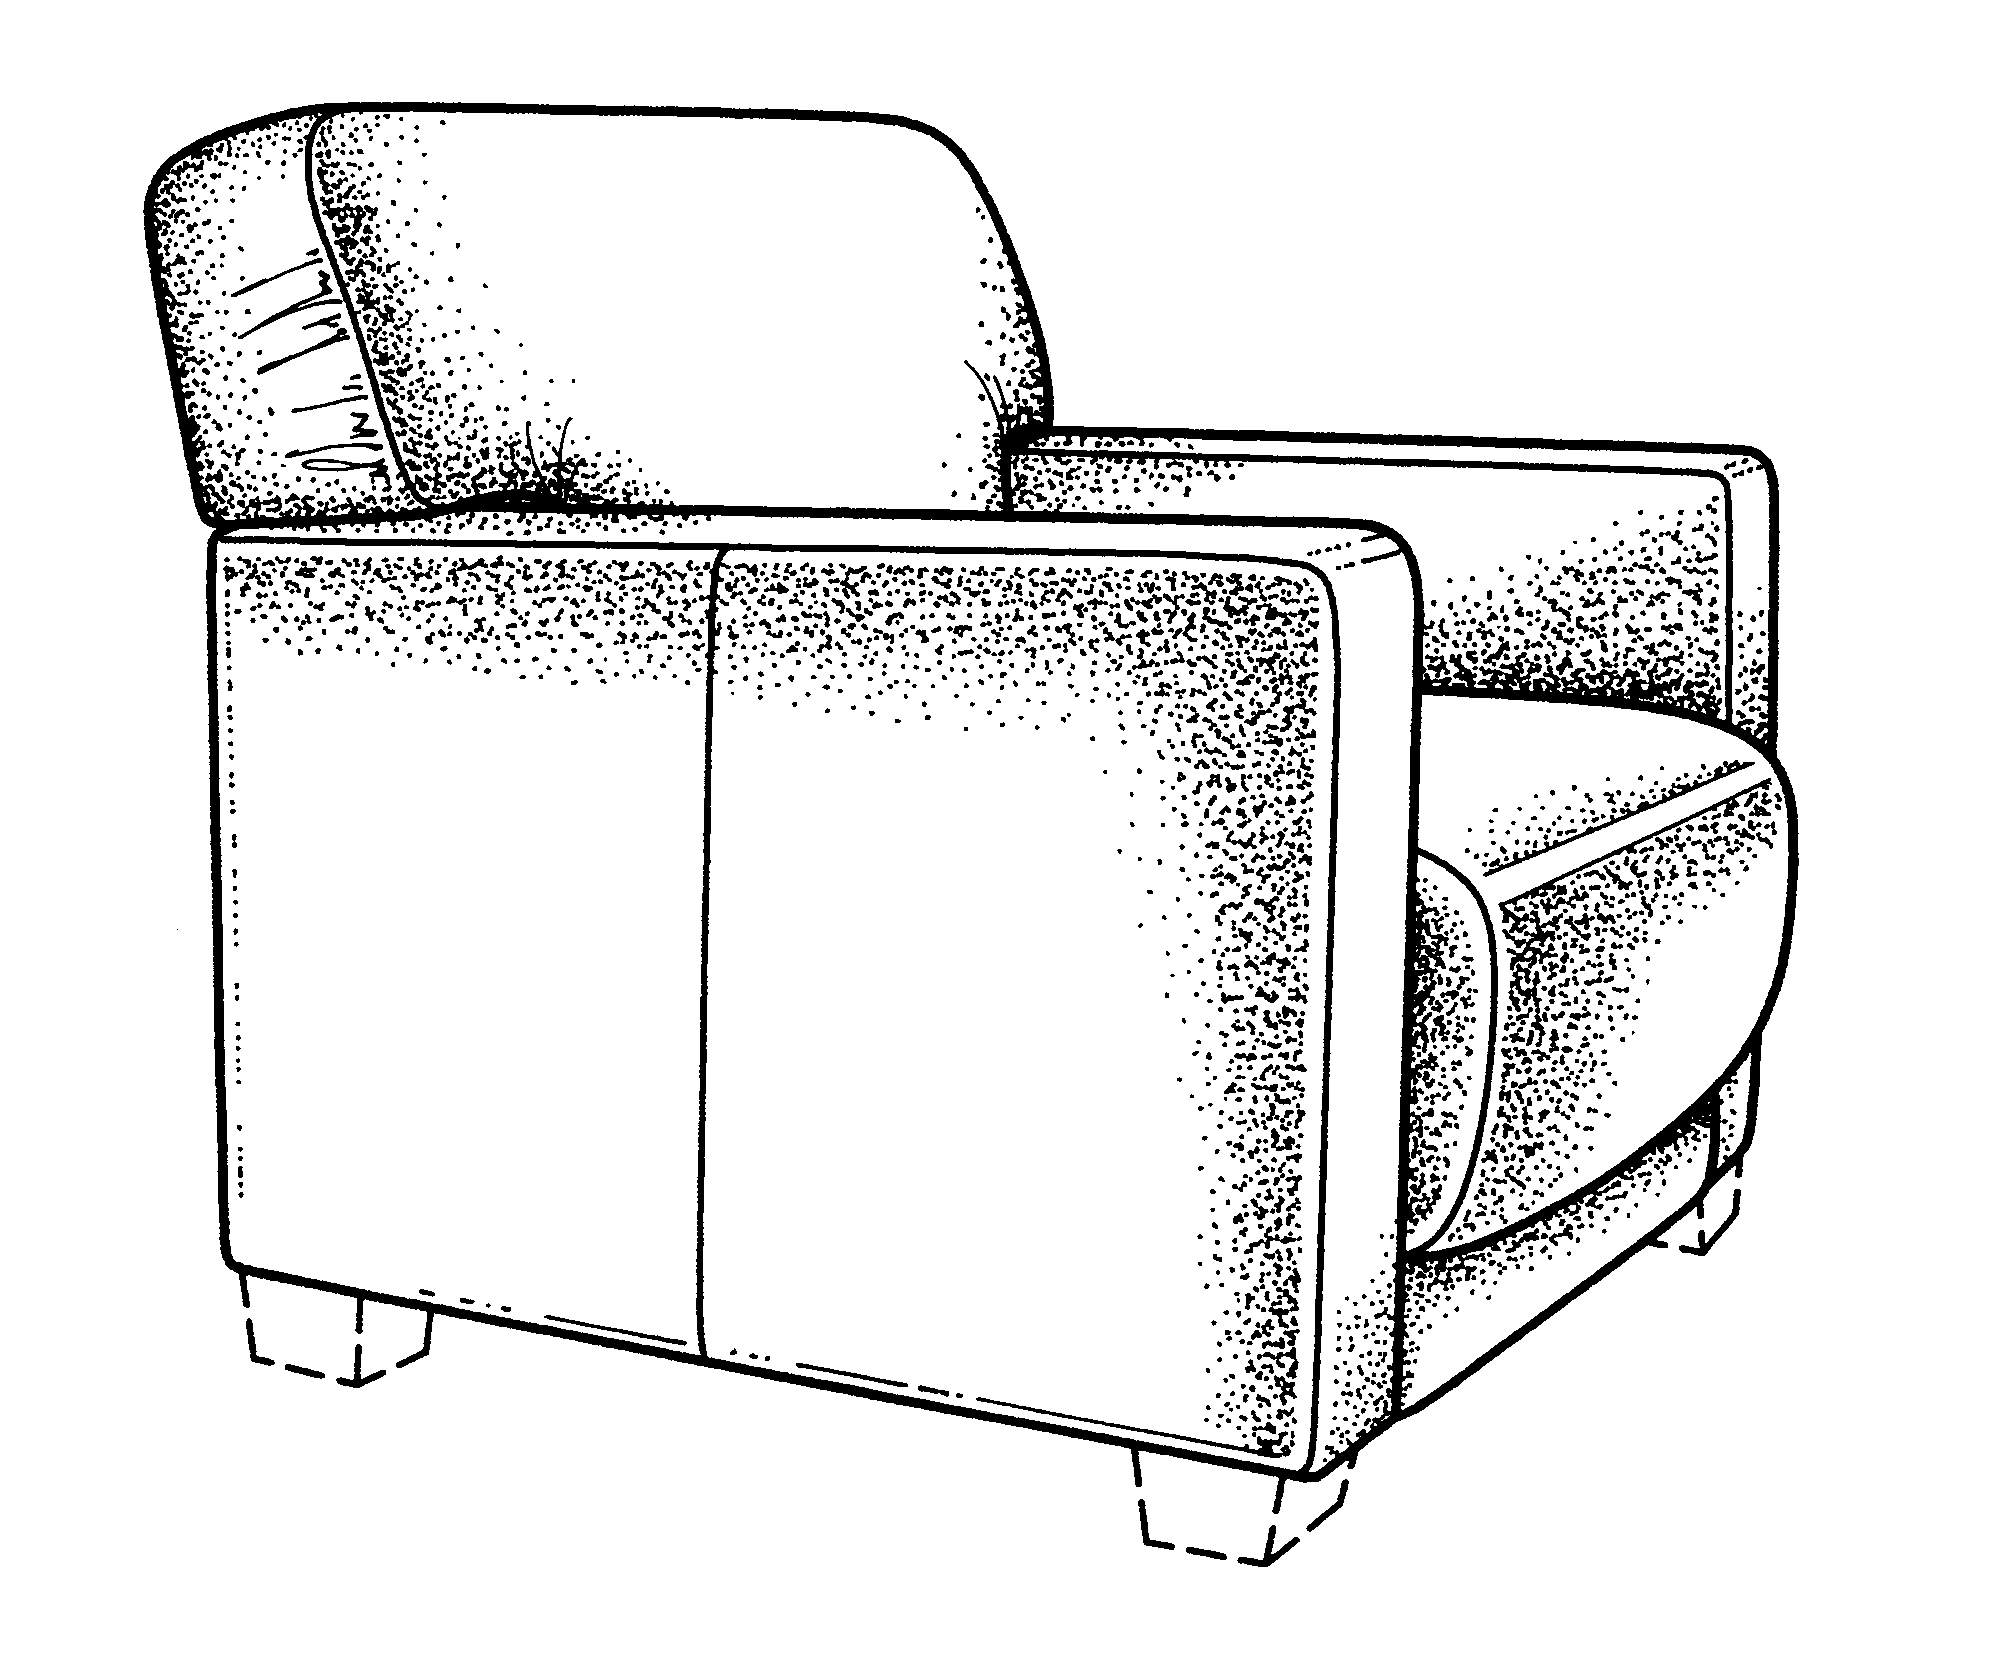 chair design patent gym weight loss usd489188 google patents